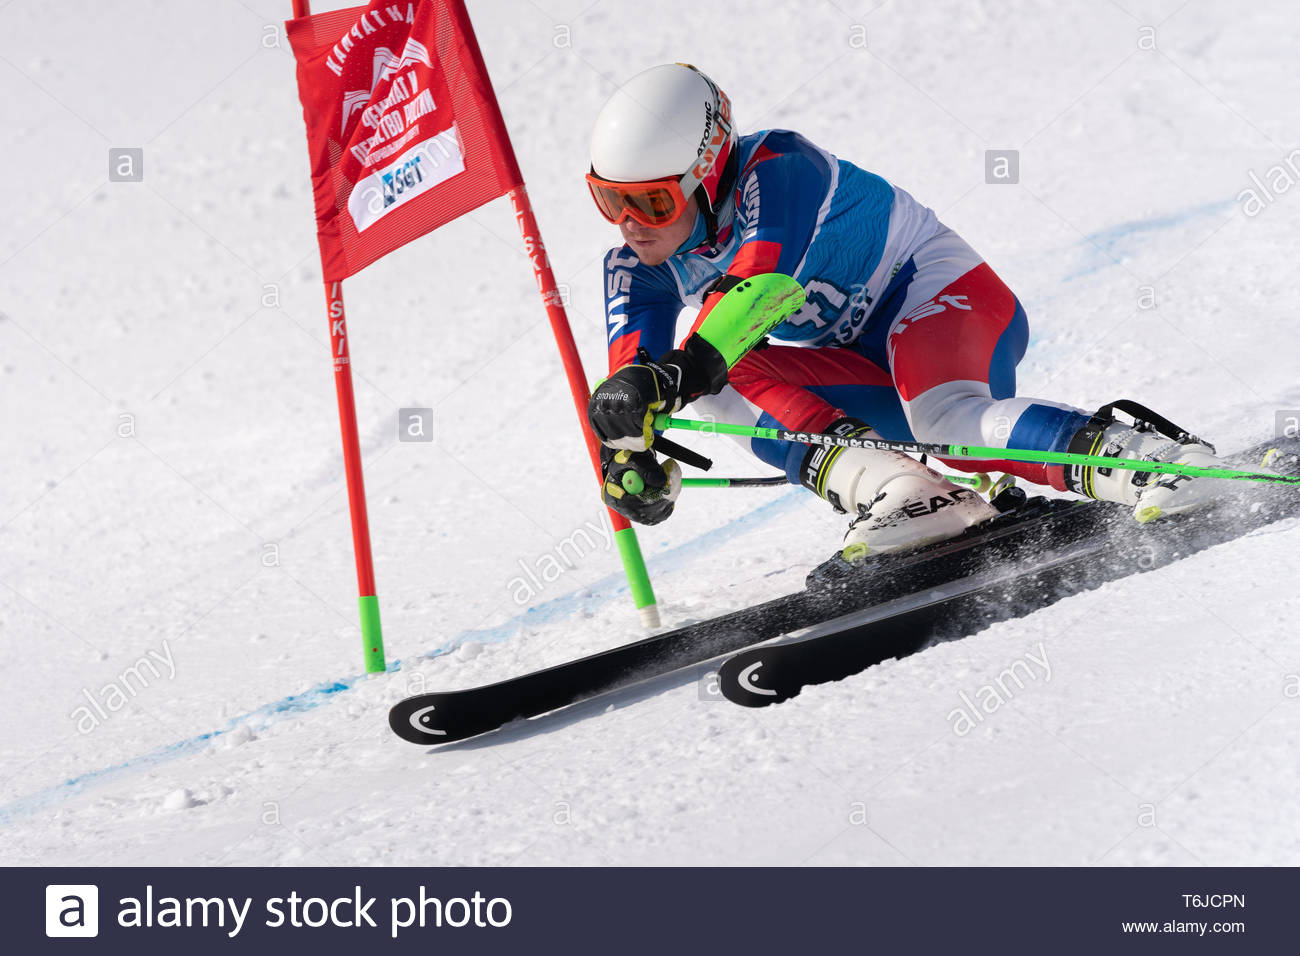 KAMCHATKA PENINSULA, RUSSIA - APR 1, 2019: Mountain skier Burmistrov Eugene (Magadan) skiing down mount slope. Russian Alpine Skiing Cup, Internationa - Stock Image